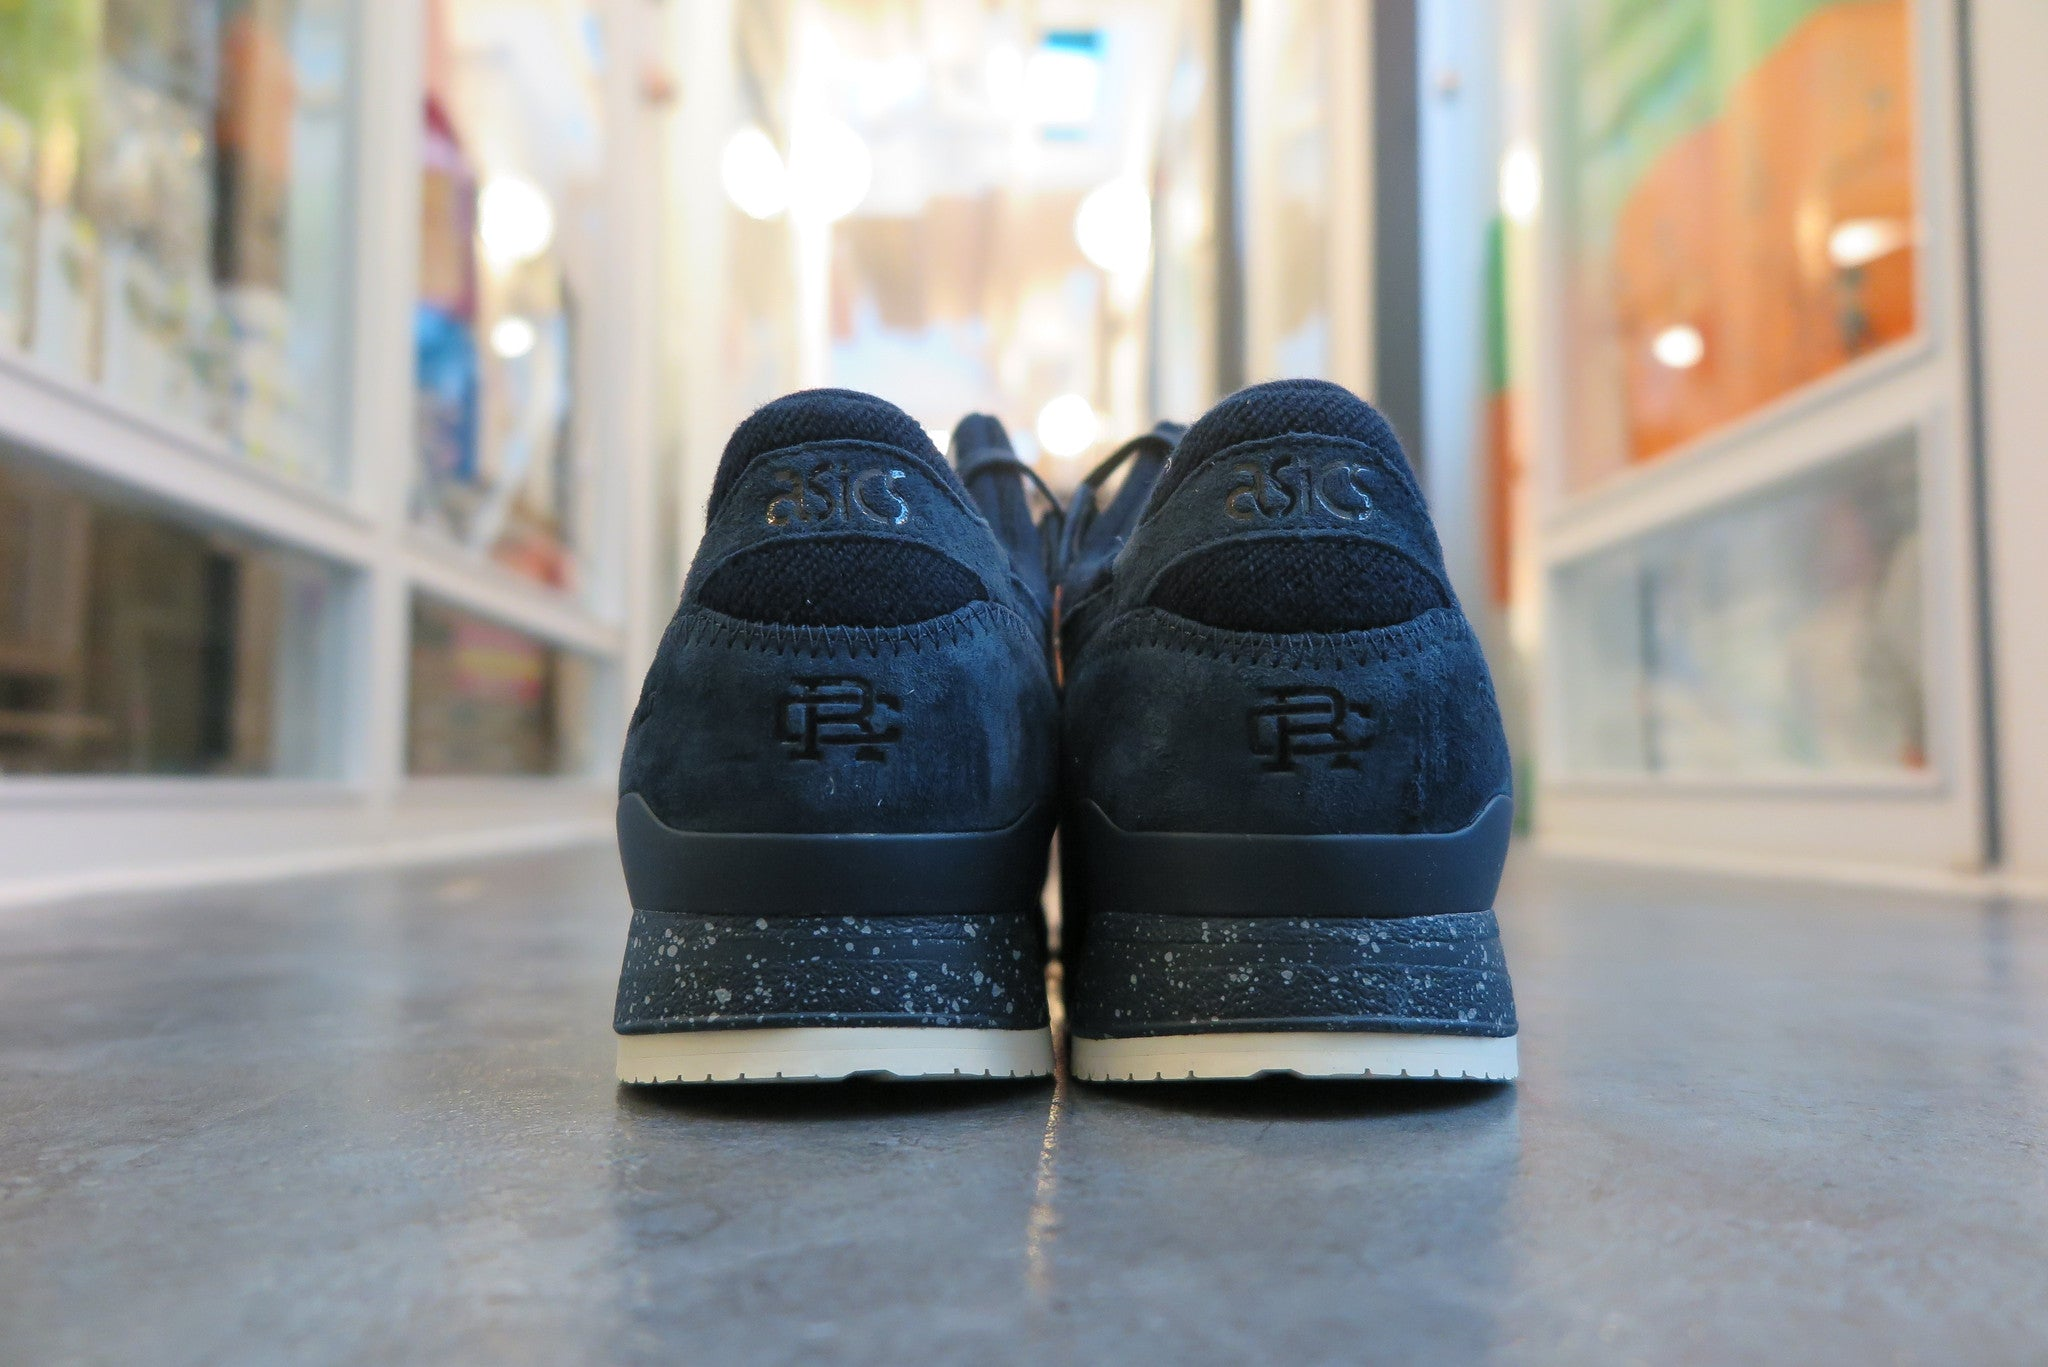 Reigning Champ X Asics Gel Lyte III in Navy #H53GK-5050-Sneakers-Navy Selected Shop